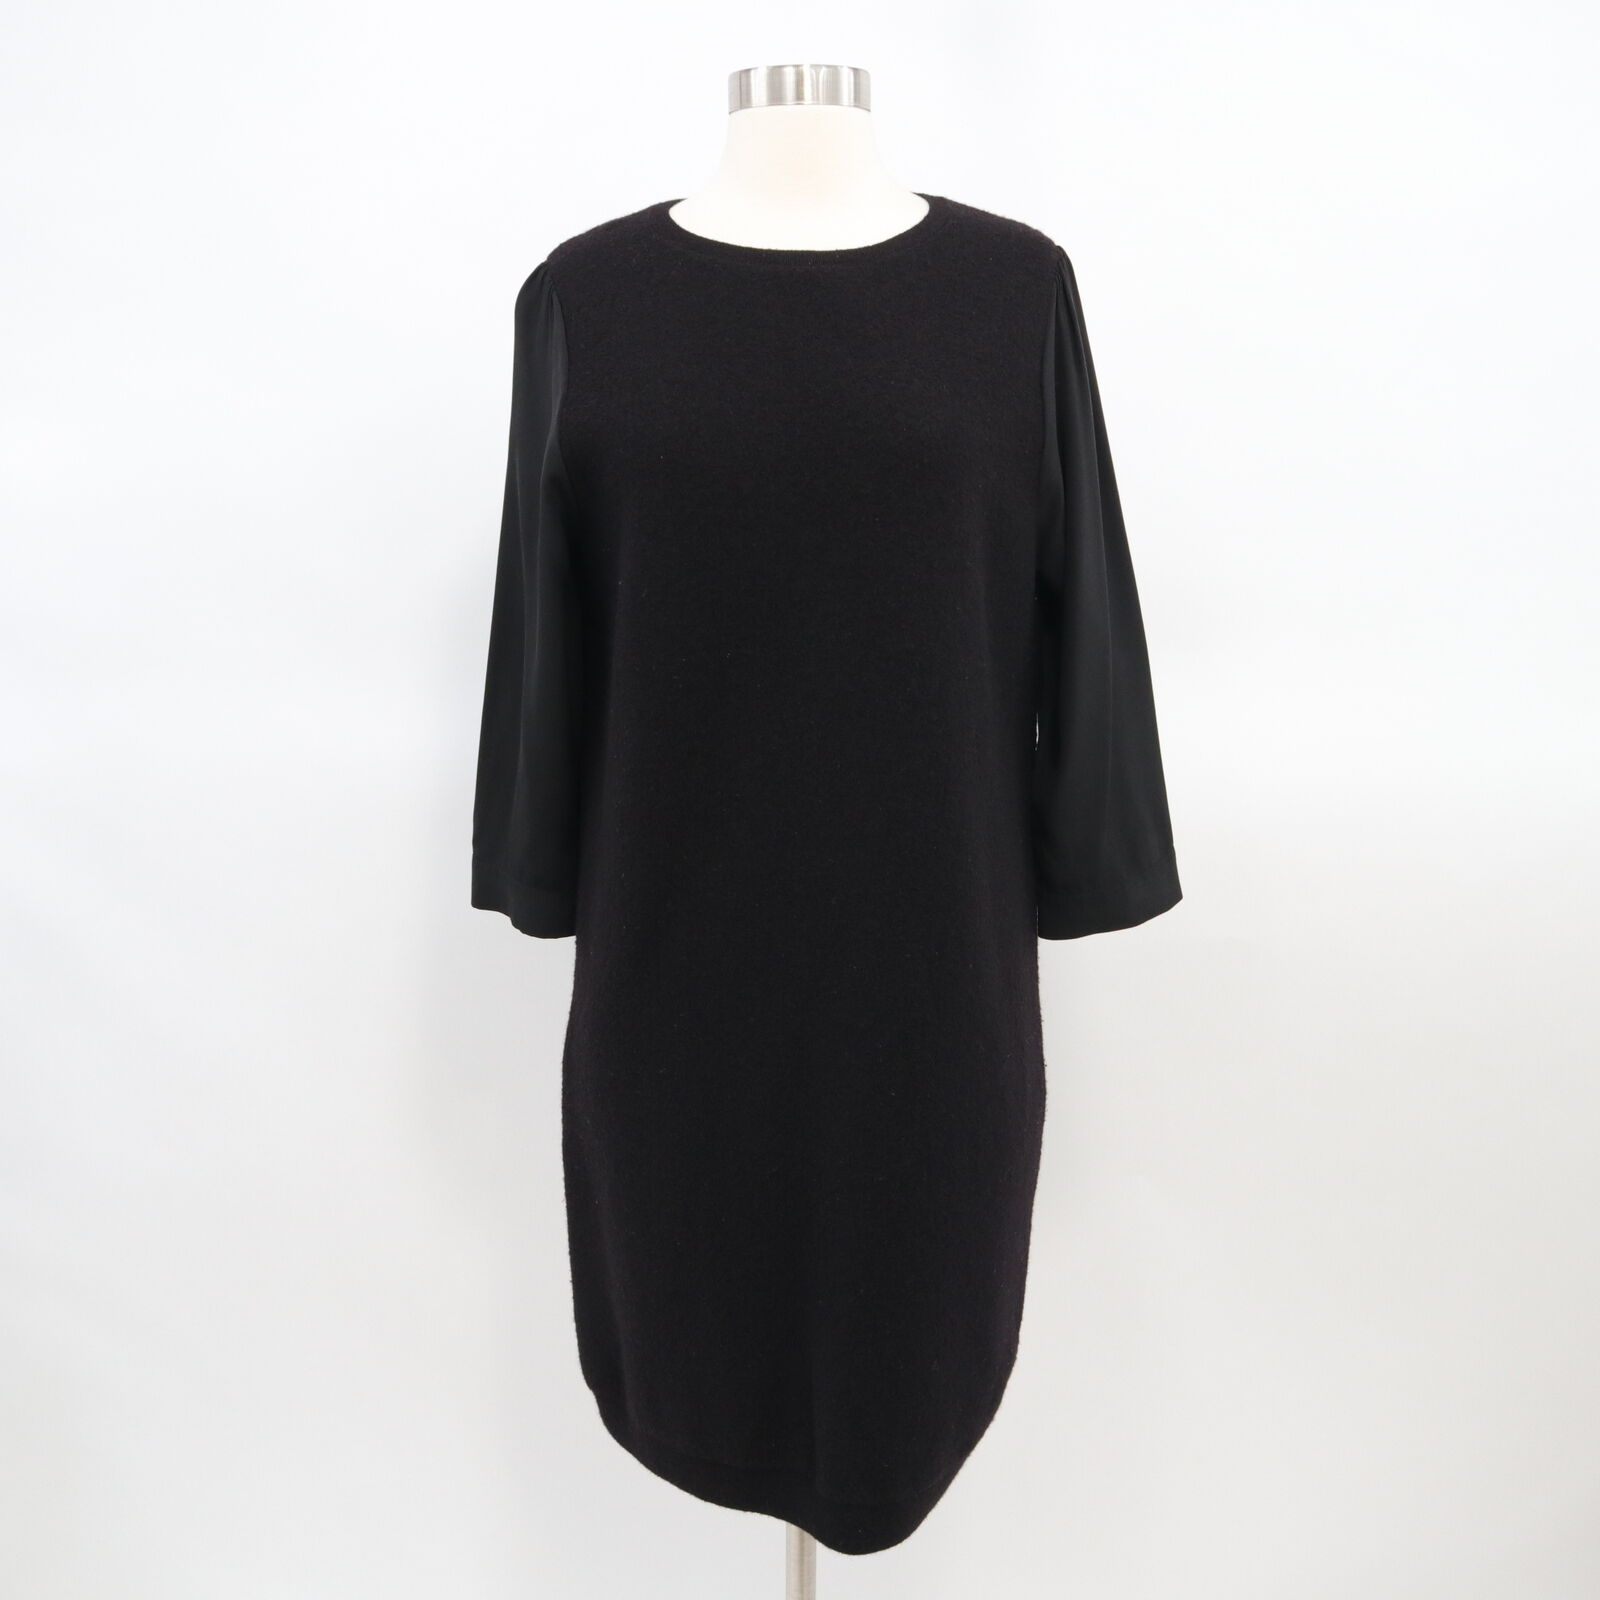 COS Sweater Jumper Dress damen Boiled Wool schwarz S Small Mixed Material Sleeves